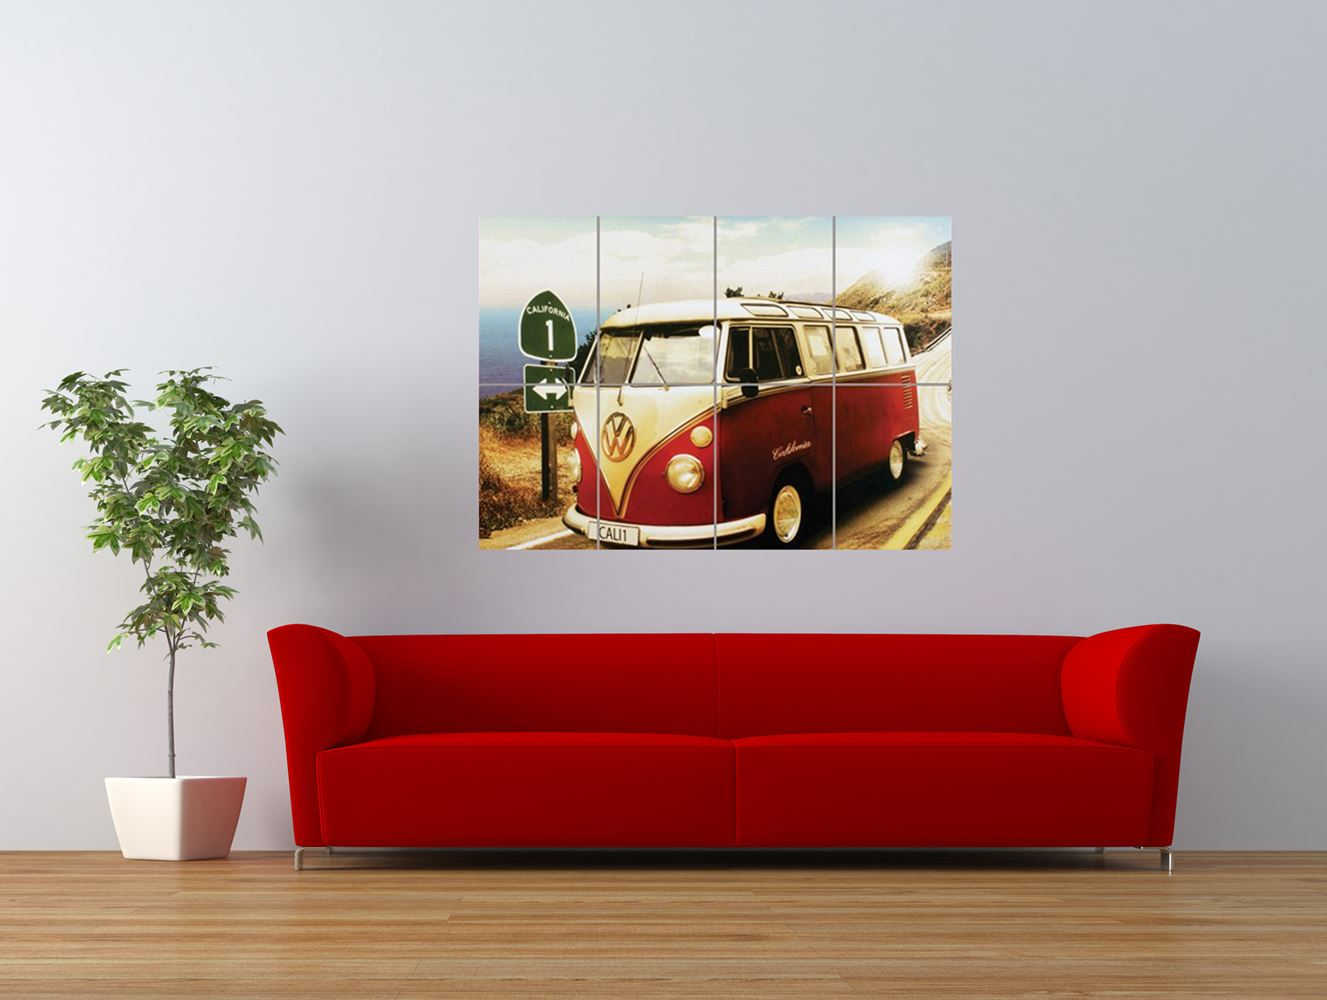 volkswagen vw van car camper cool giant art print panel poster nor0557 ebay. Black Bedroom Furniture Sets. Home Design Ideas